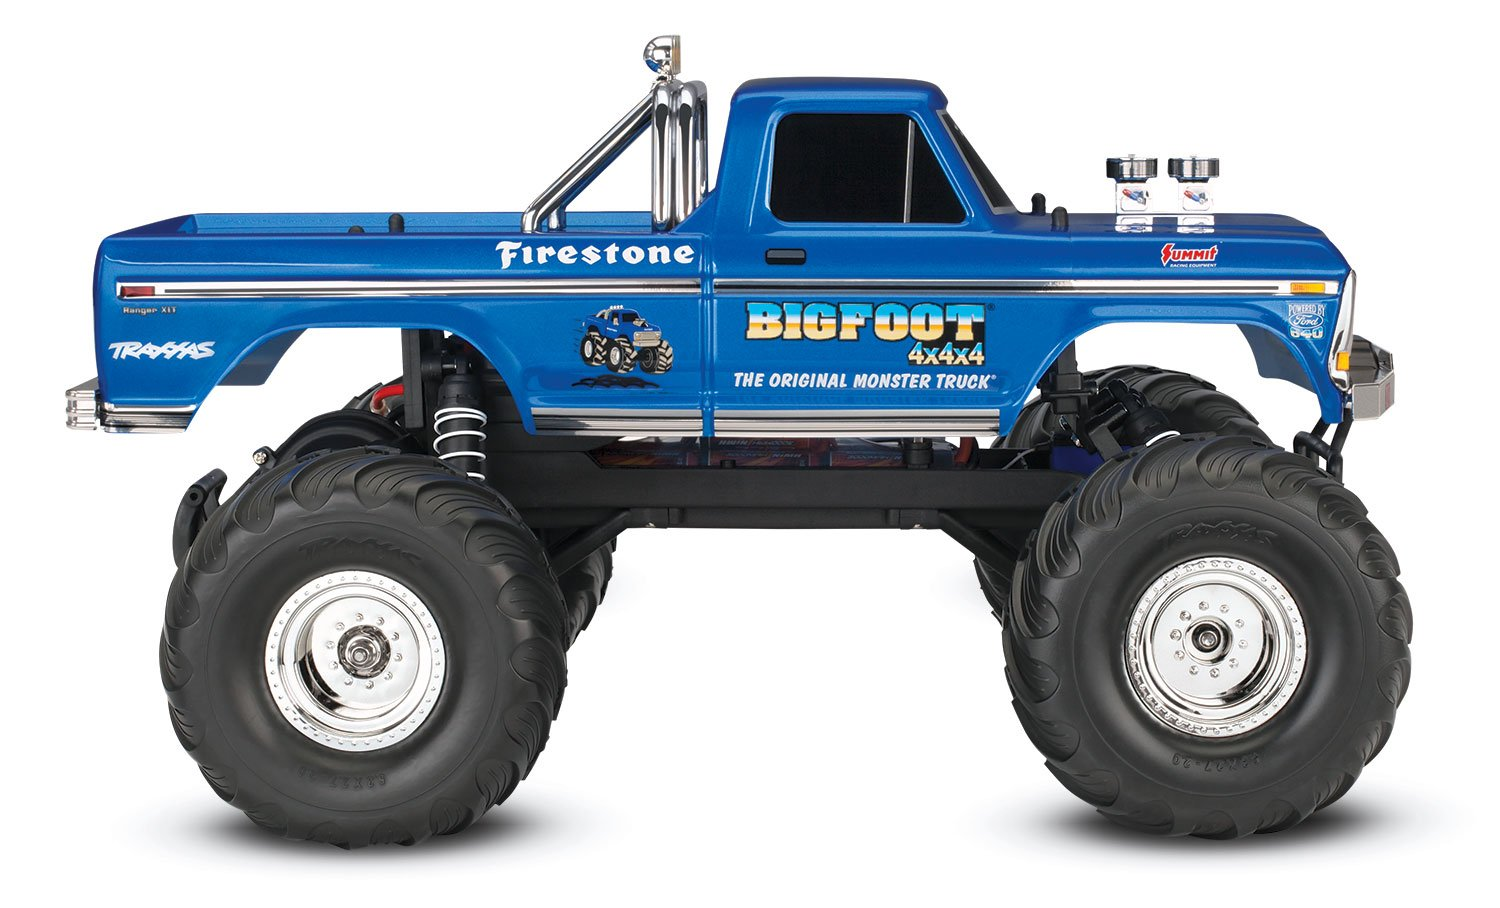 Traxxas 36034 1 Bigfoot No 2wd 10 Scale Monster Screensaver Used Slash For Sale Truck Vehicle Blue Toys Games